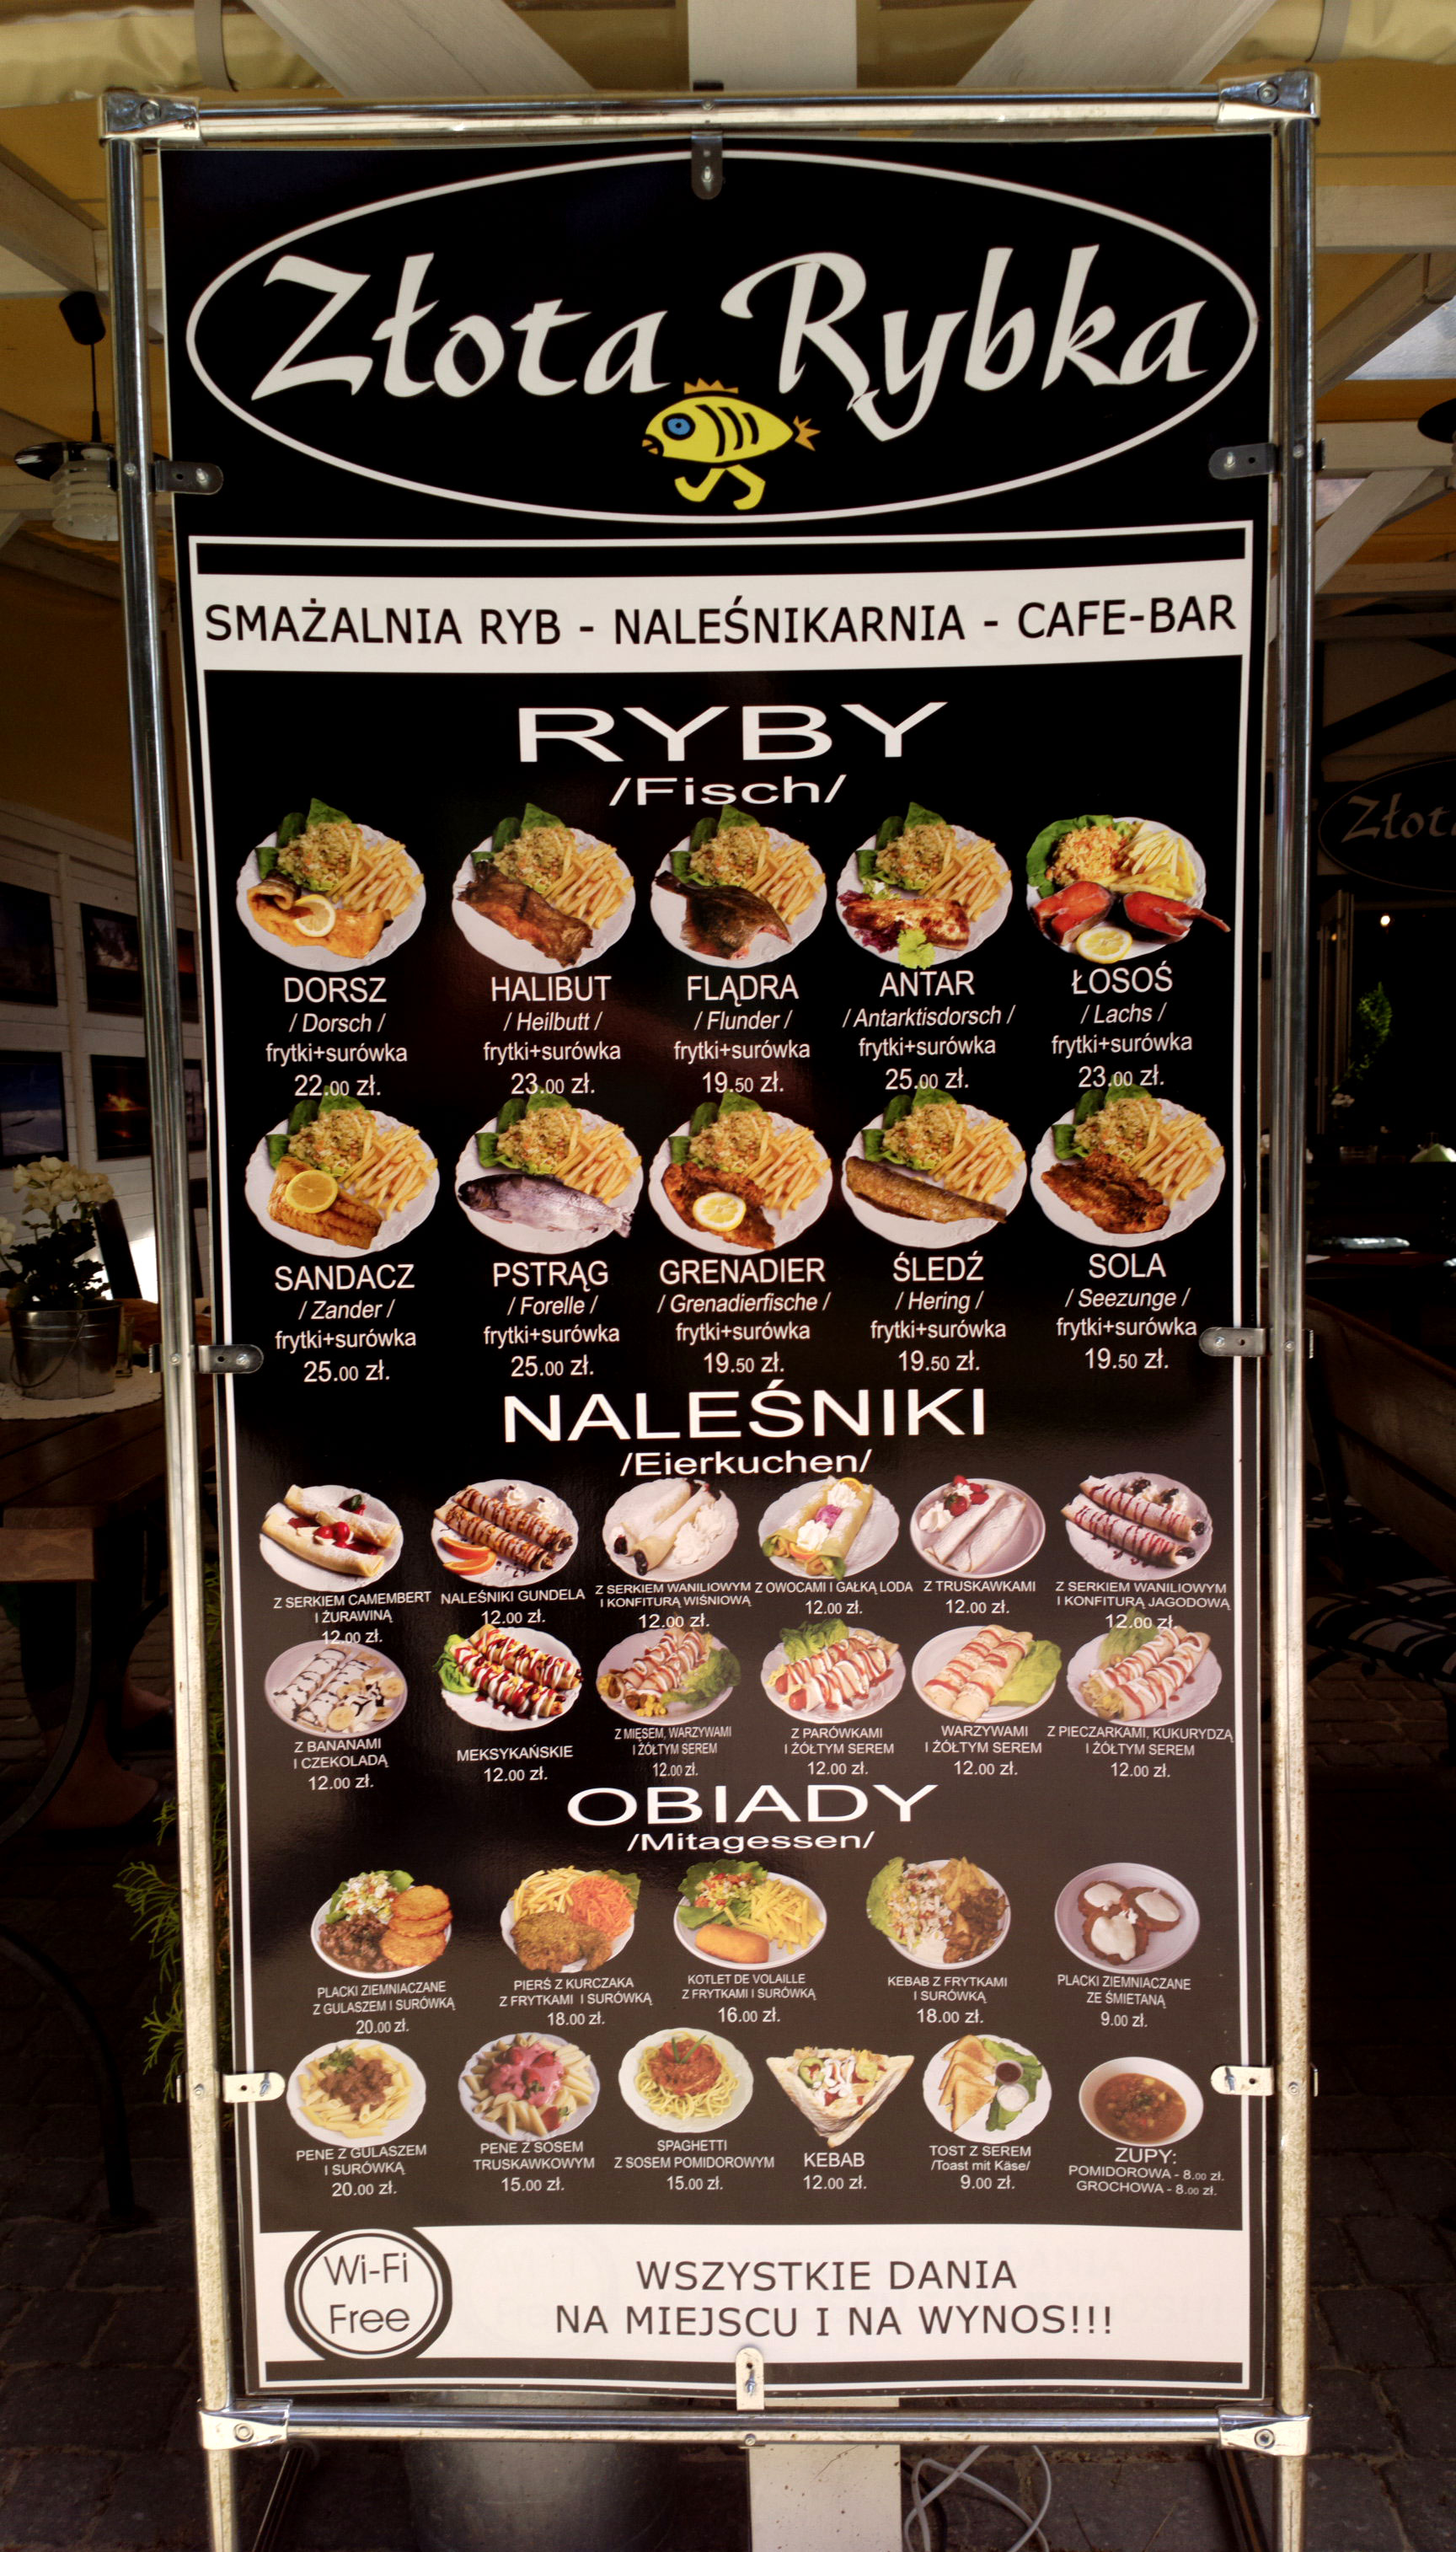 Very good poster for foreigners at a restaurant in Pogorzelica, because it shows how the food looks like.